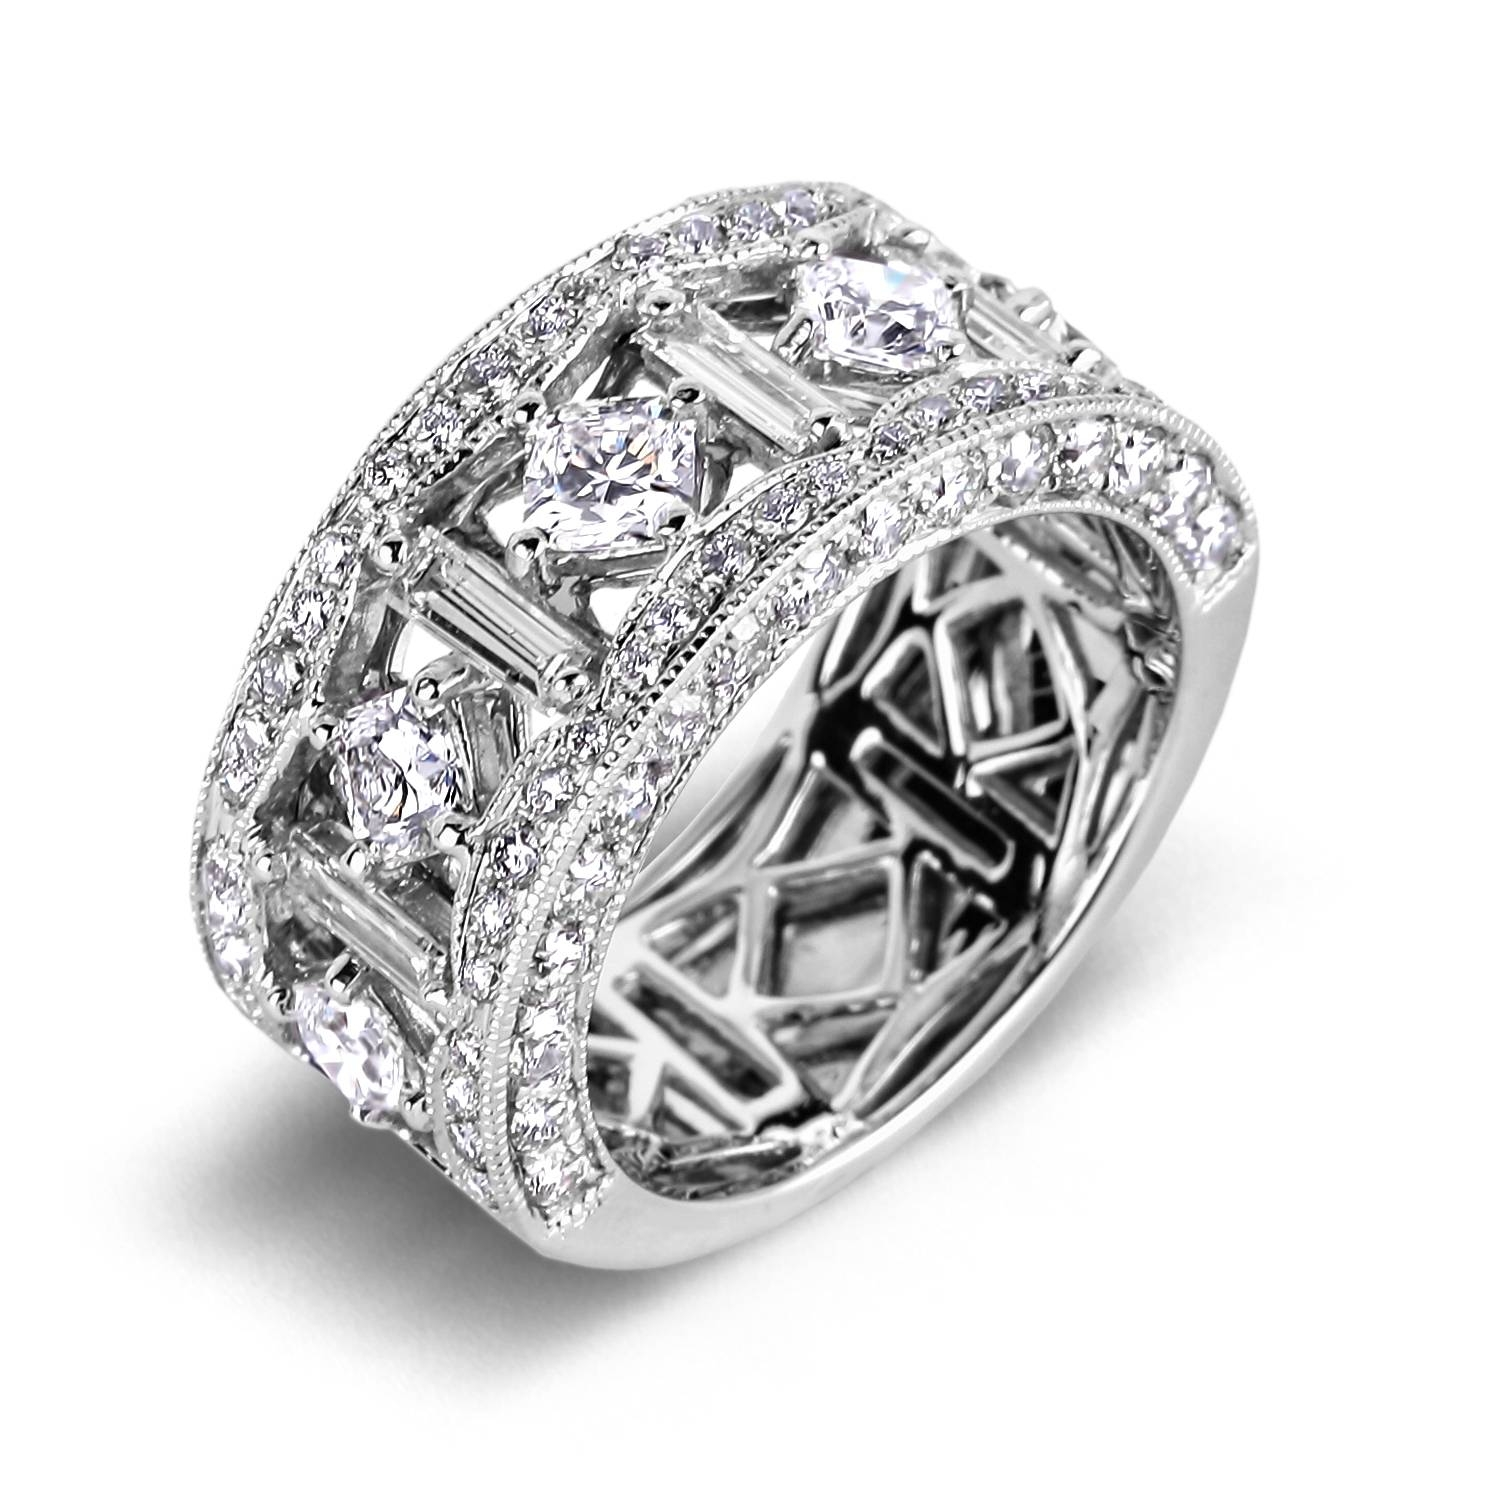 Wedding Anniversary Rings Diamonds | Wedding Ideas With Regard To Most Popular Womens Diamond Anniversary Rings (View 5 of 25)